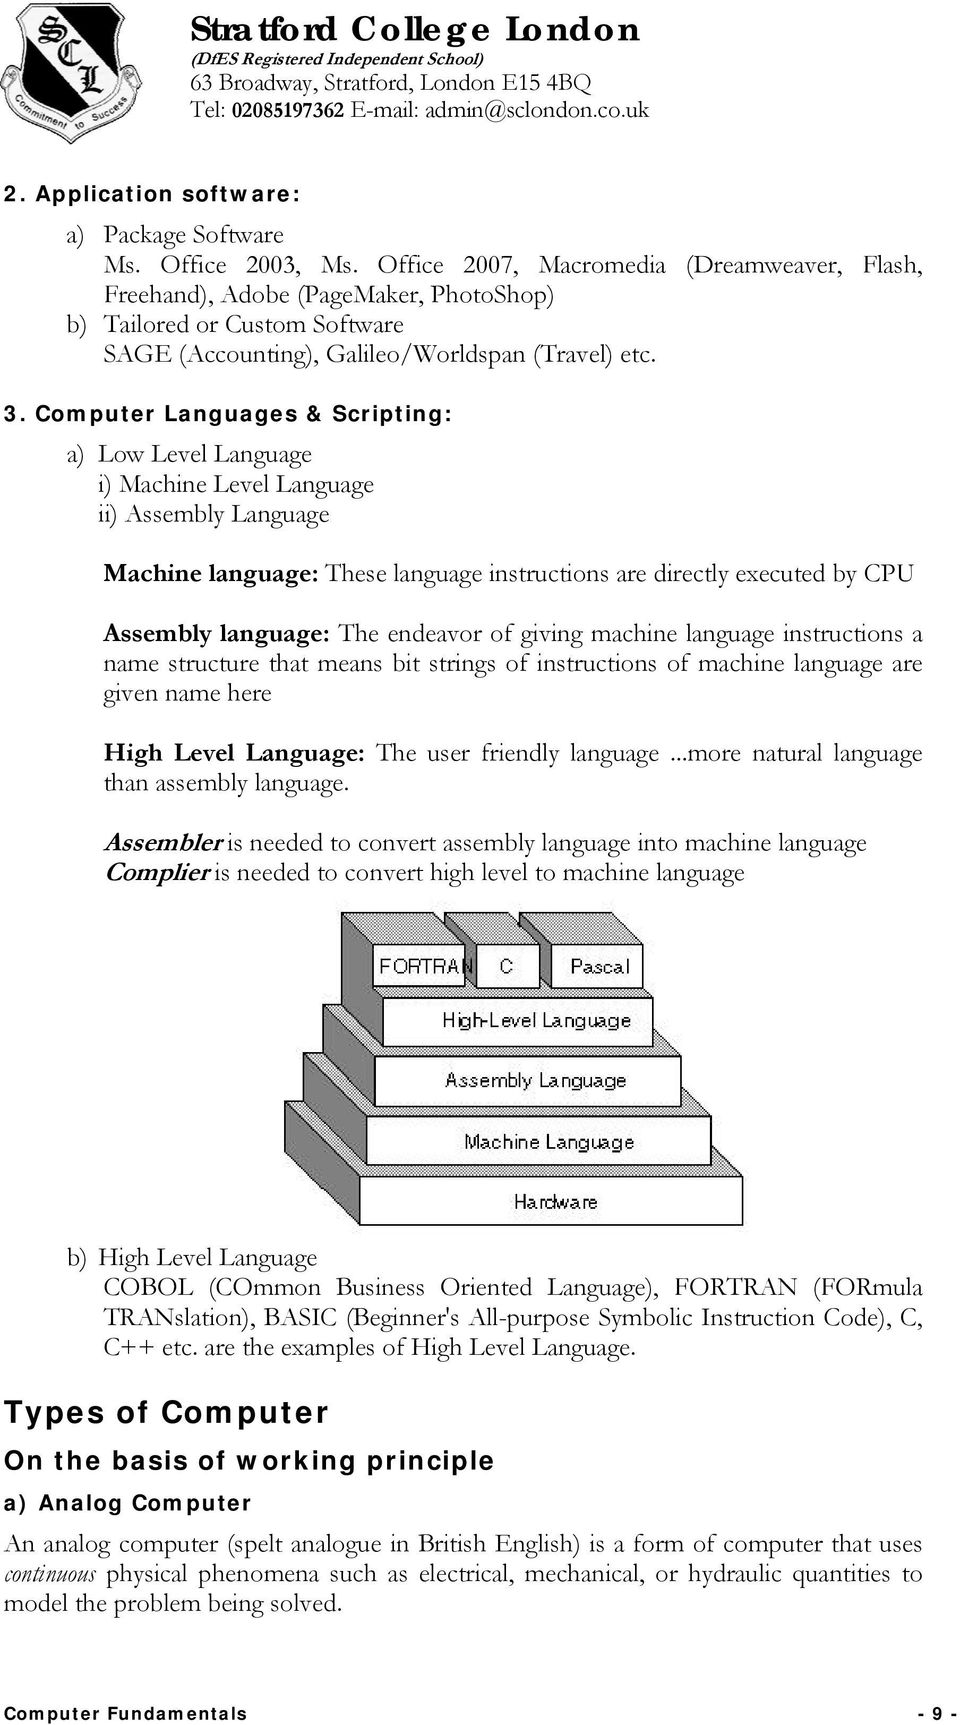 Computer Languages & Scripting: a) Low Level Language i) Machine Level Language ii) Assembly Language Machine language: These language instructions are directly executed by CPU Assembly language: The